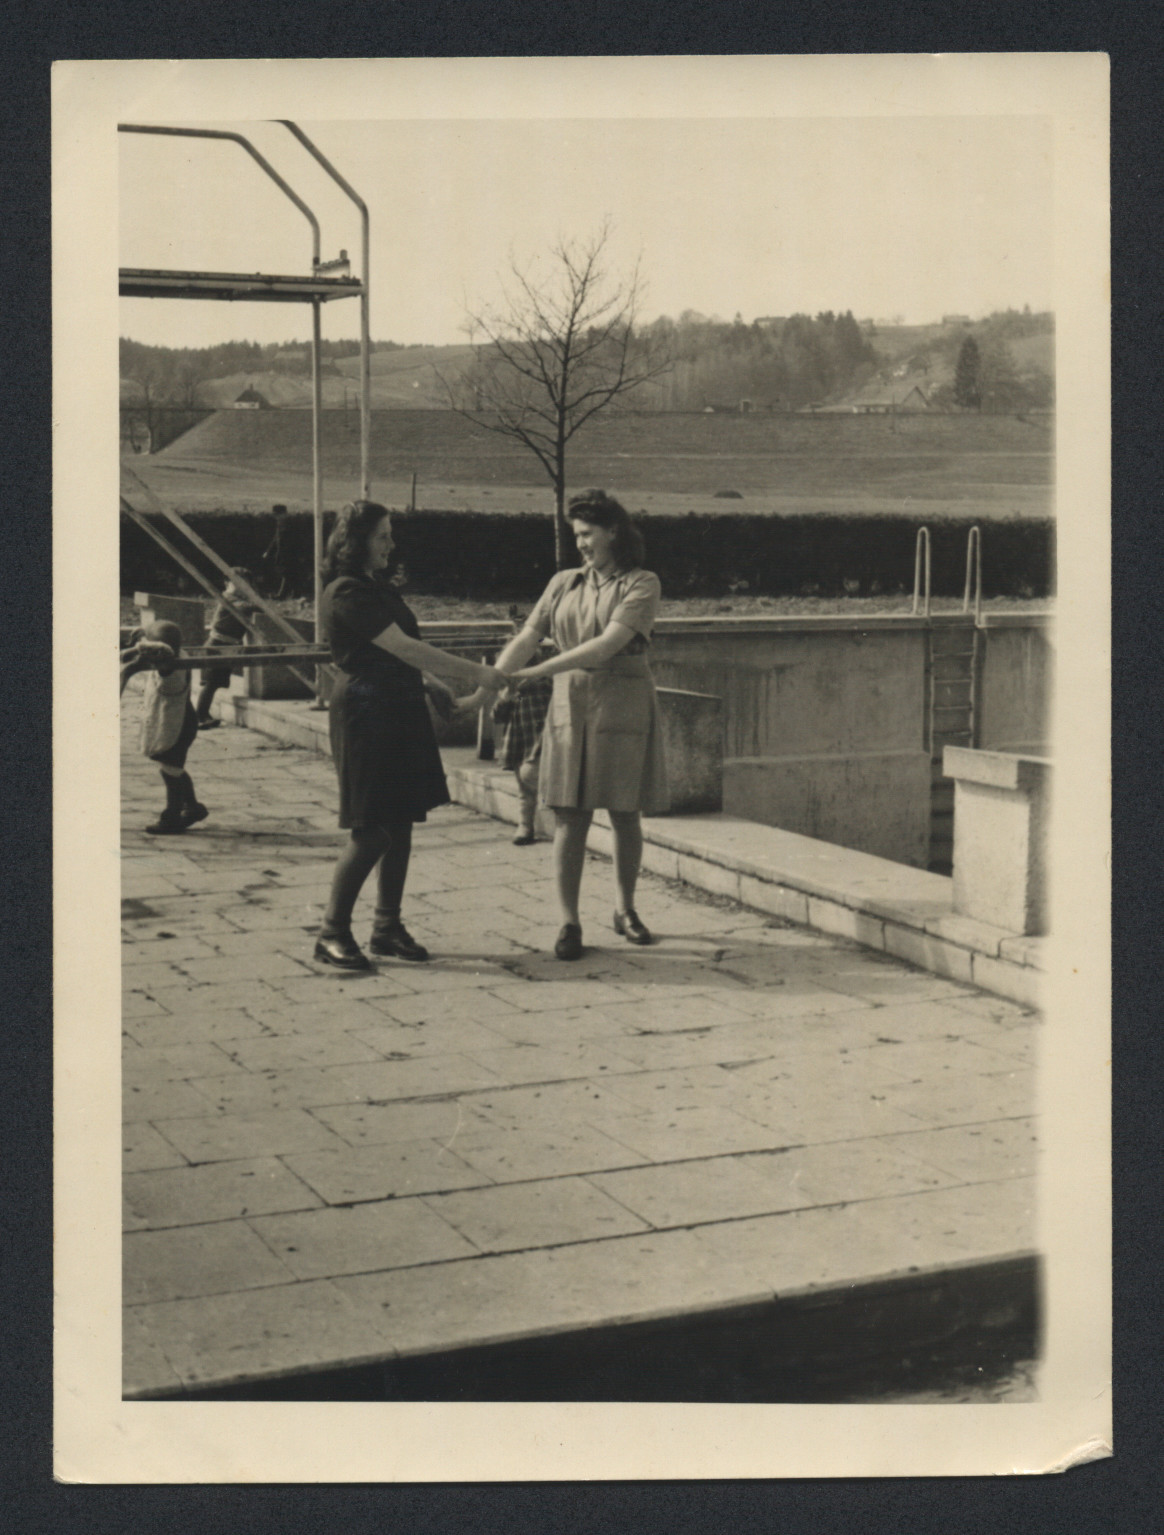 Lenke Gruenberg (left) and a friend hold hands next to the swimming pool in Deggendorf.